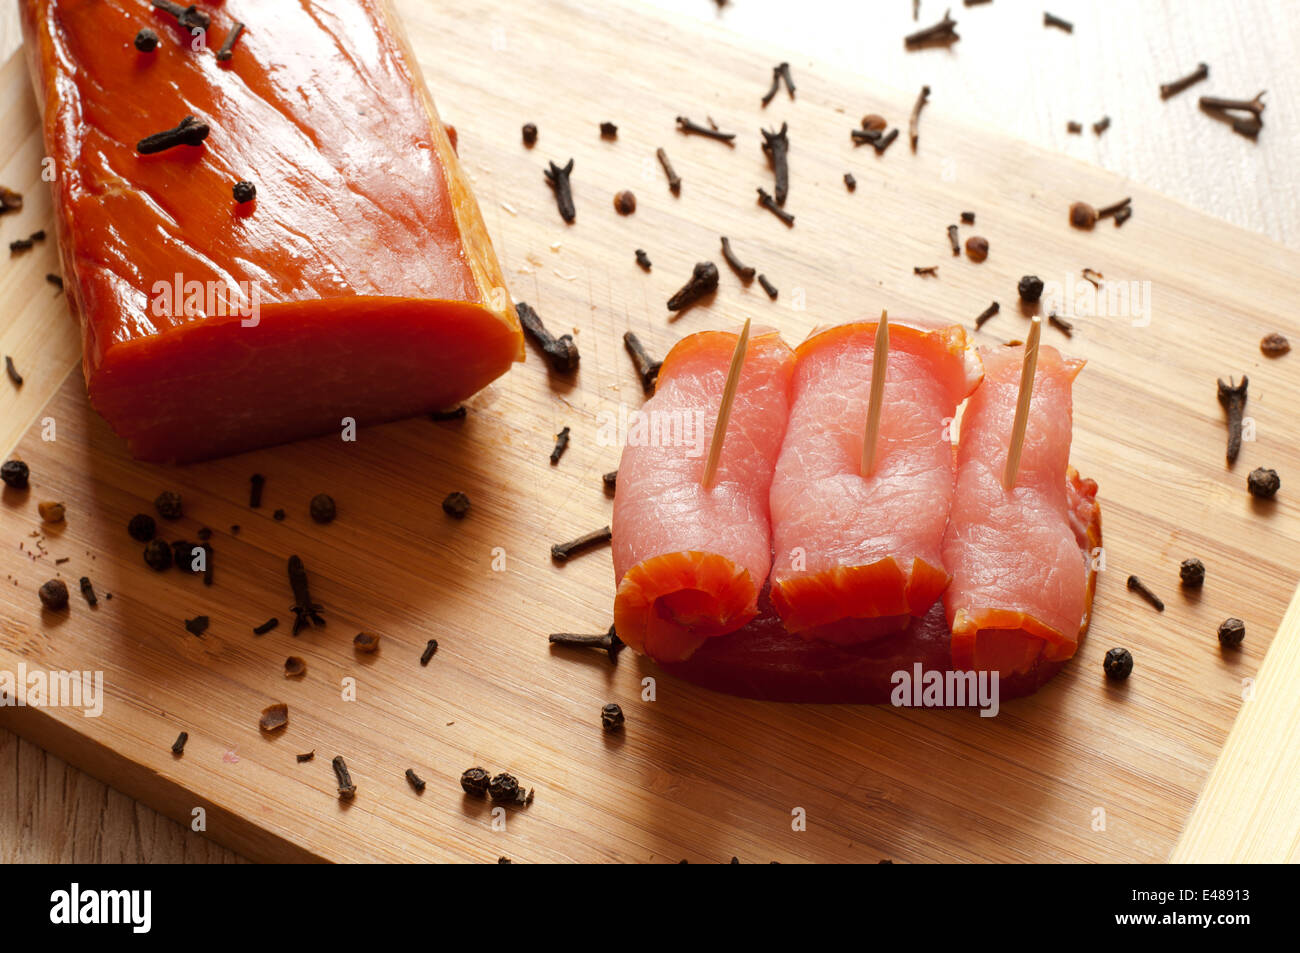 bacon pork smoked meat ready dish eating food piece slice sliced smoked canapes toothpicks appetizing tasty nobody - Stock Image